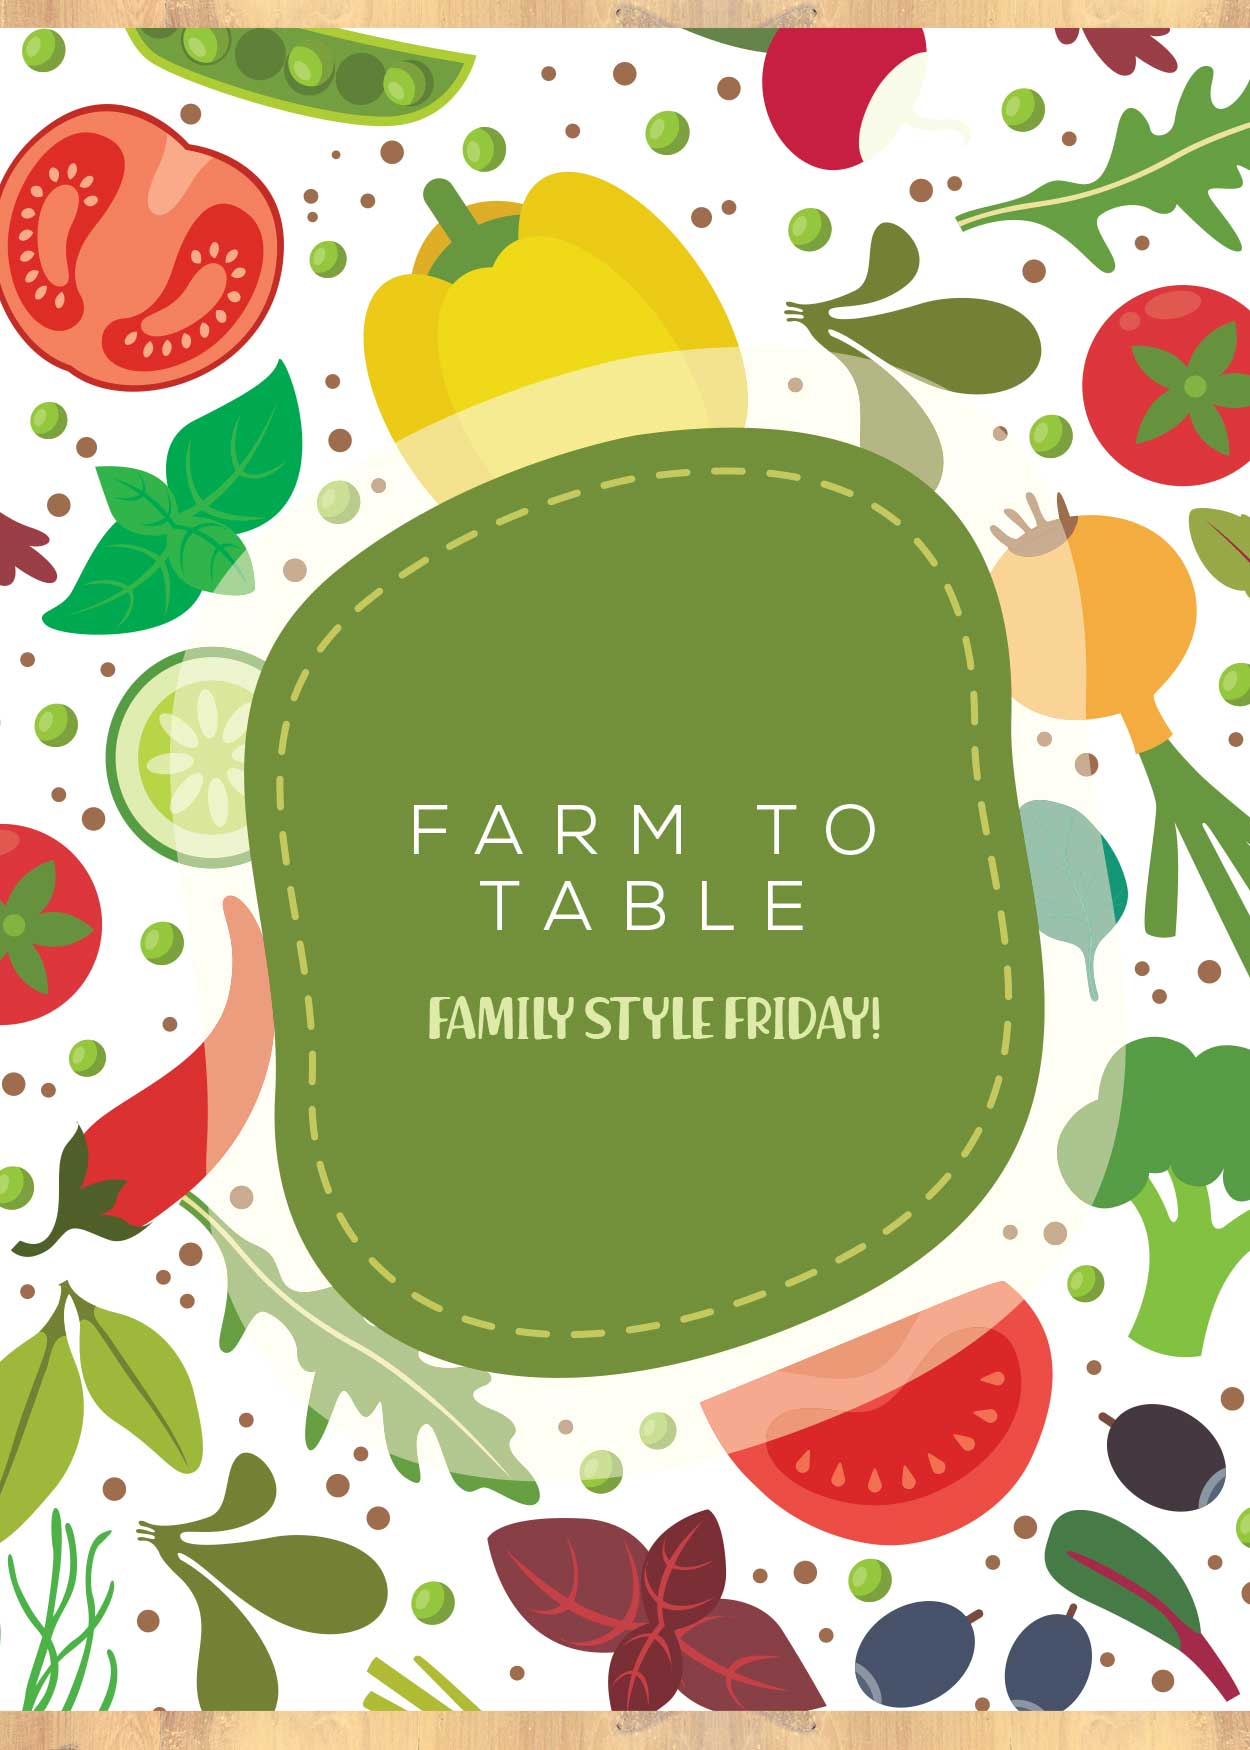 Family Style Friday Farm to Table Dinners